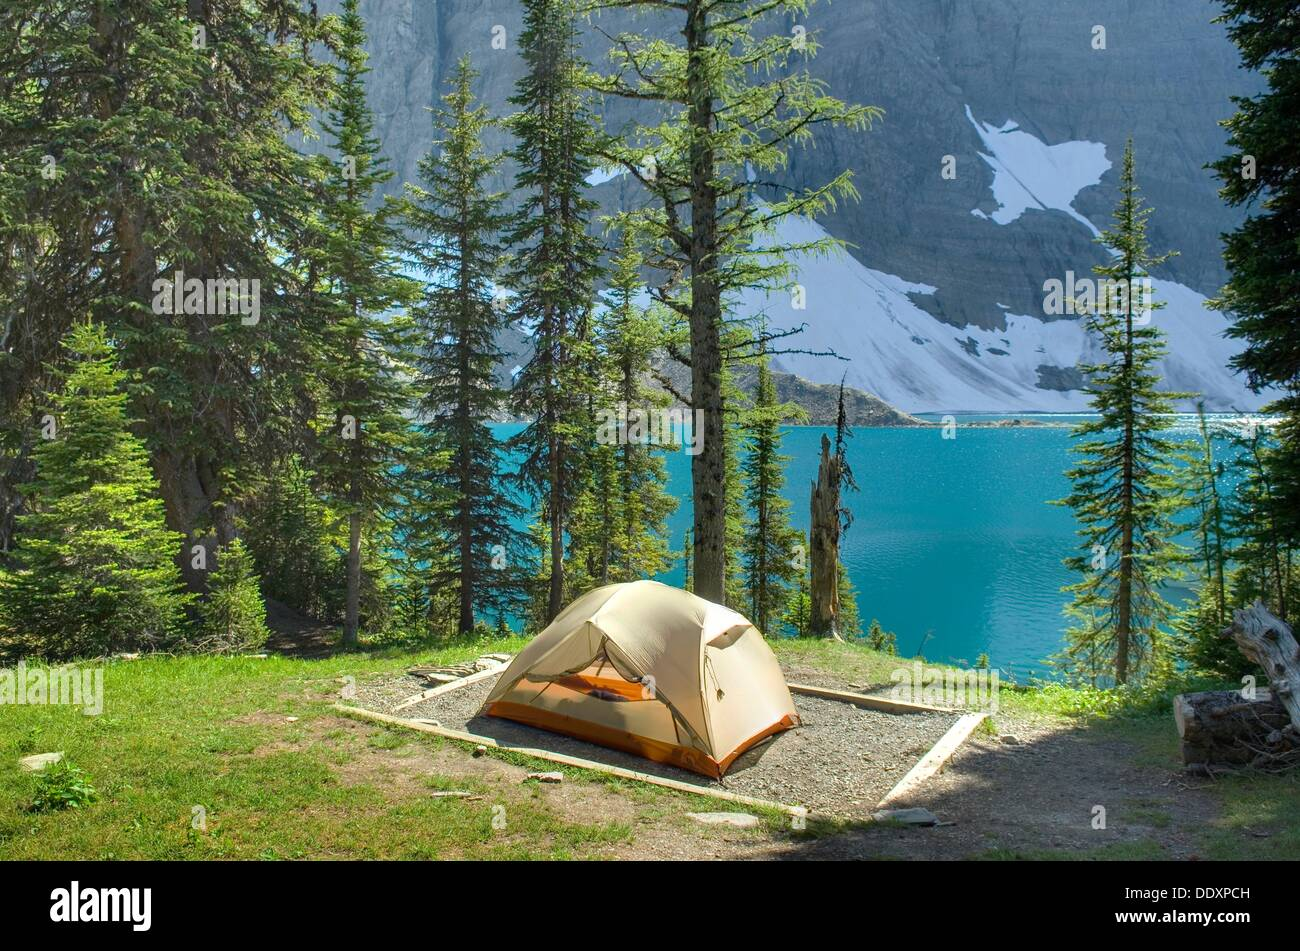 Backcountry campsite at floe lake along the rockwall trail backcountry campsite at floe lake along the rockwall trail kootenay national park british columbia canada sciox Image collections